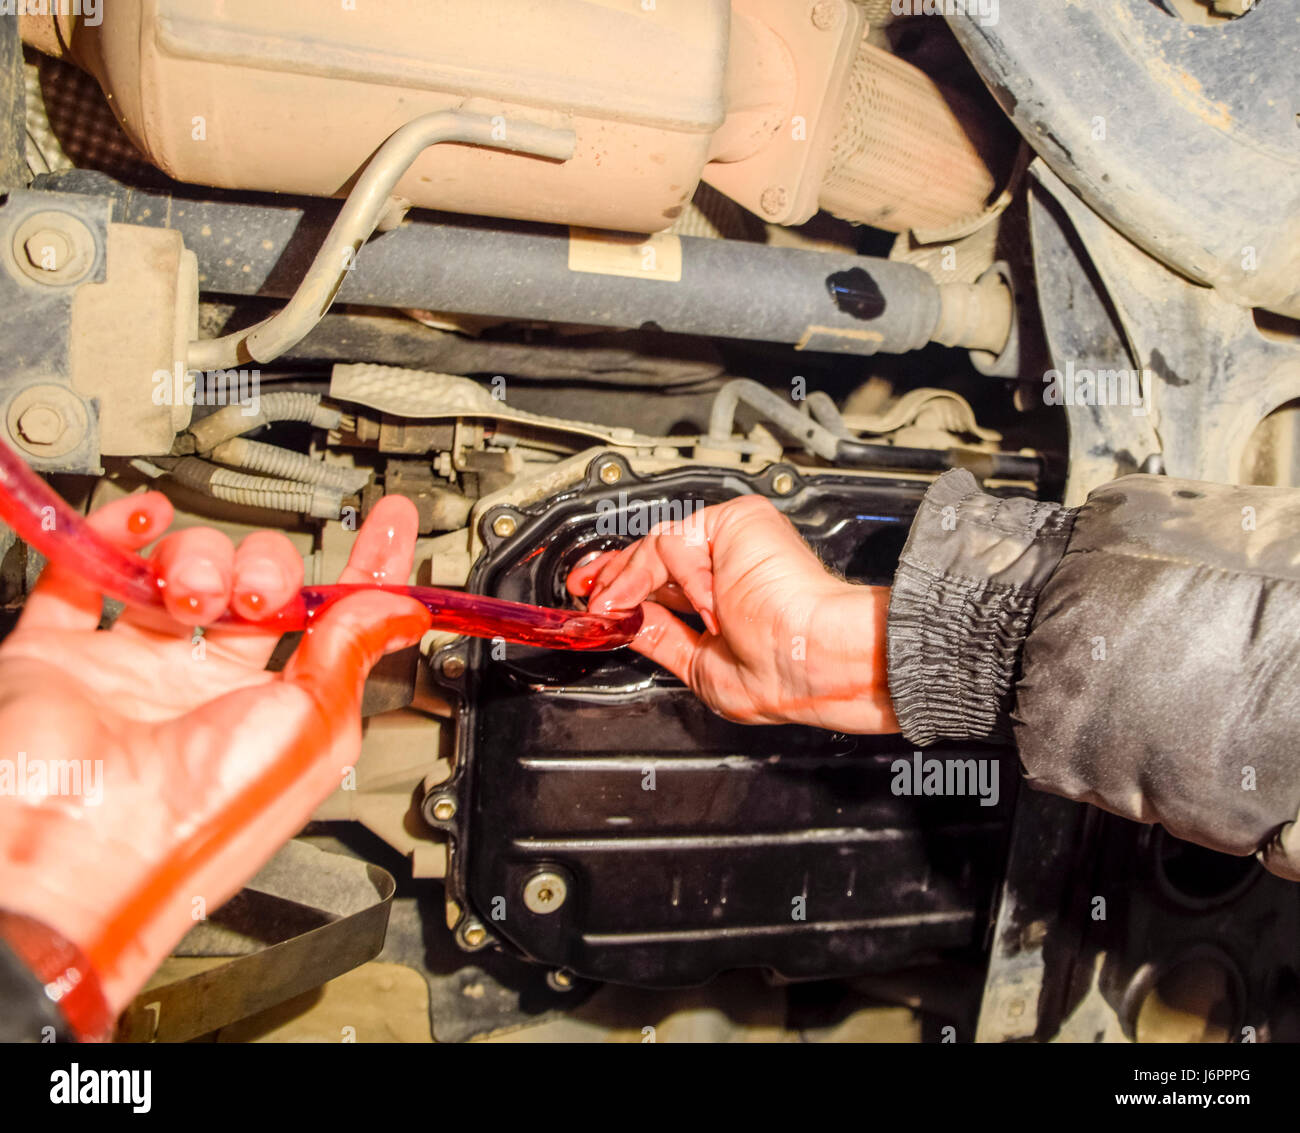 Oil Change In Automatic Transmission Filling The Oil